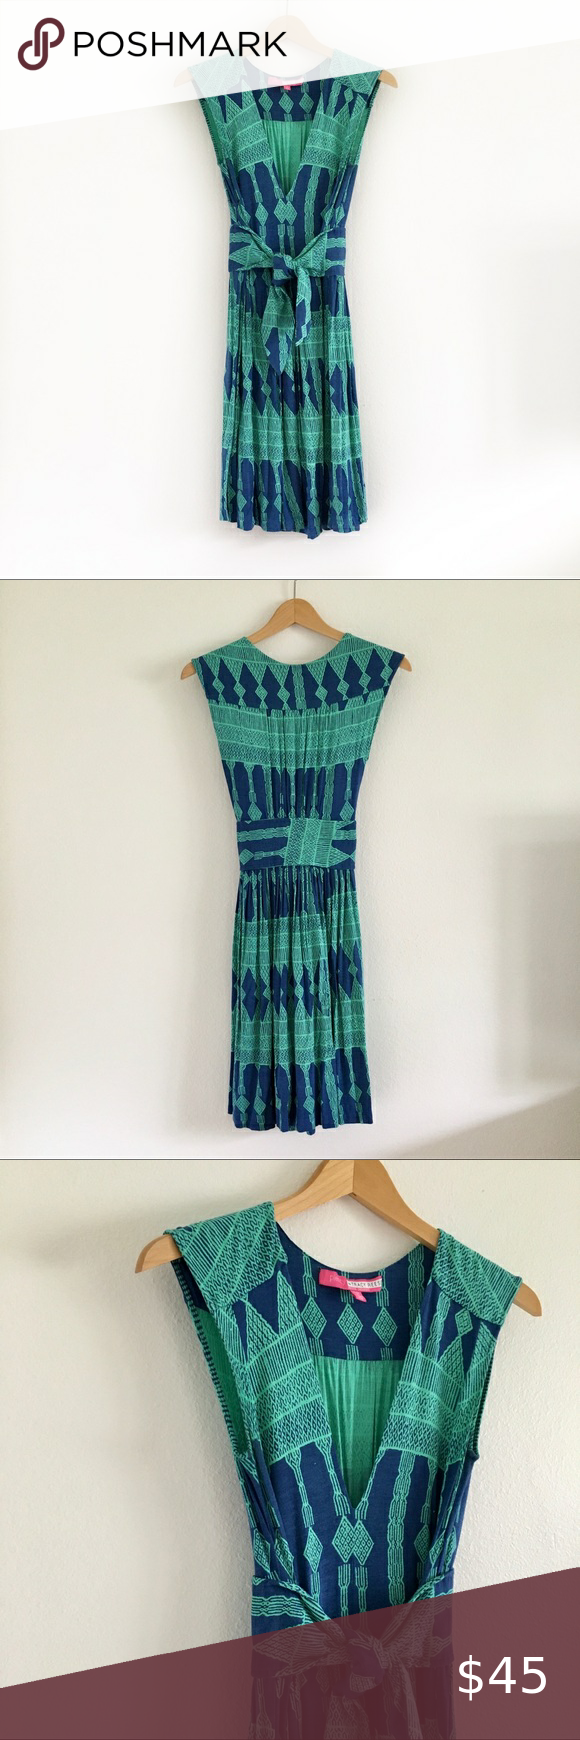 Anthropologie Plenty by Tracy Reese Joanne Dress Long charmed by the exotic allure of India and all points east, Tracy Reese skillfully melds the details, textures and colors of faraway lands into wearable works of art. We can't get enough of this plush jersey dress, the perfect throw-on-and-go staple. Excellent condition! Anthropologie Dresses Mini #wearableart